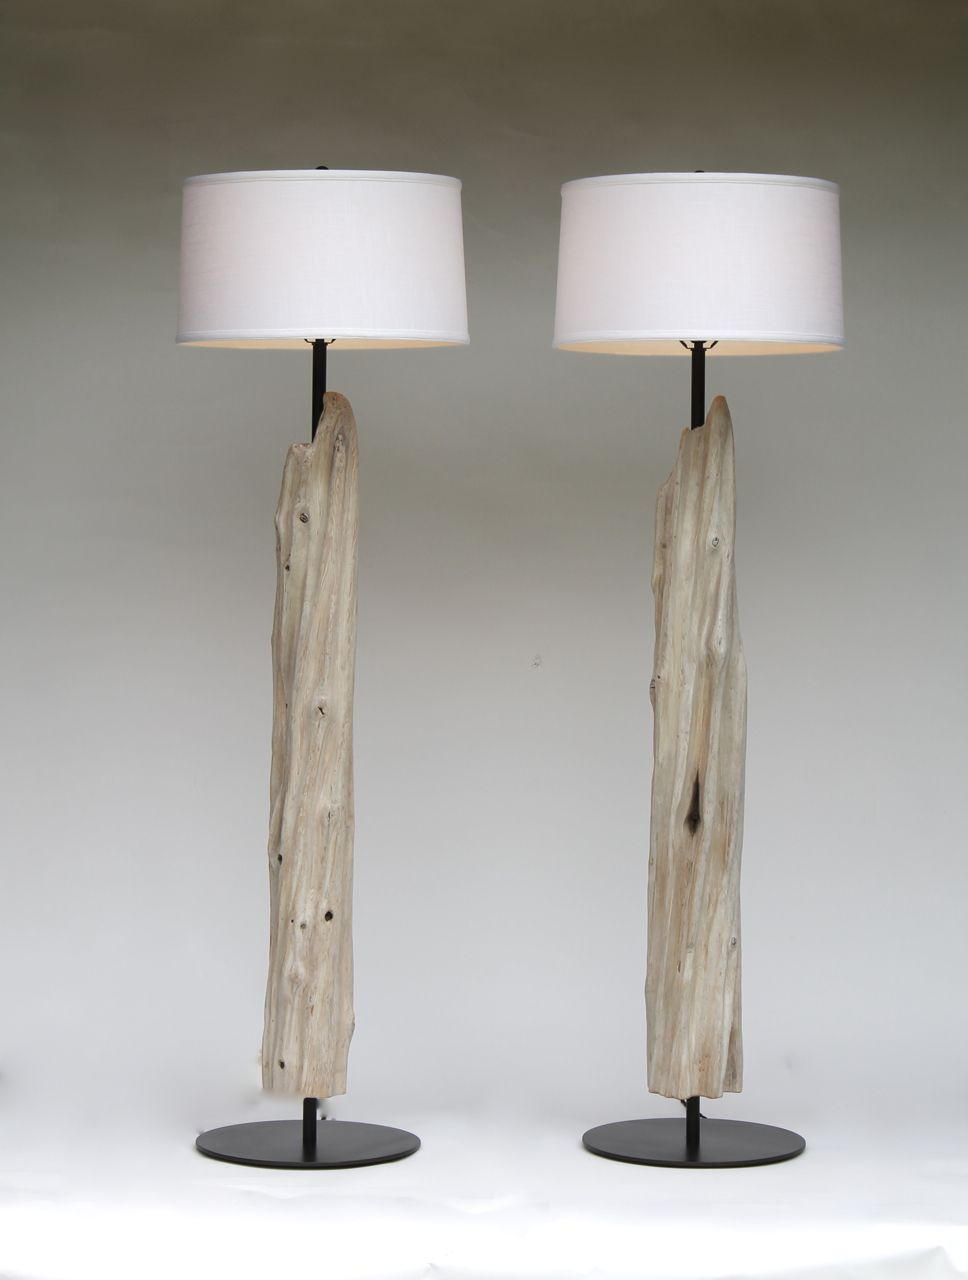 market lamp do driftwood base xxx world product floor